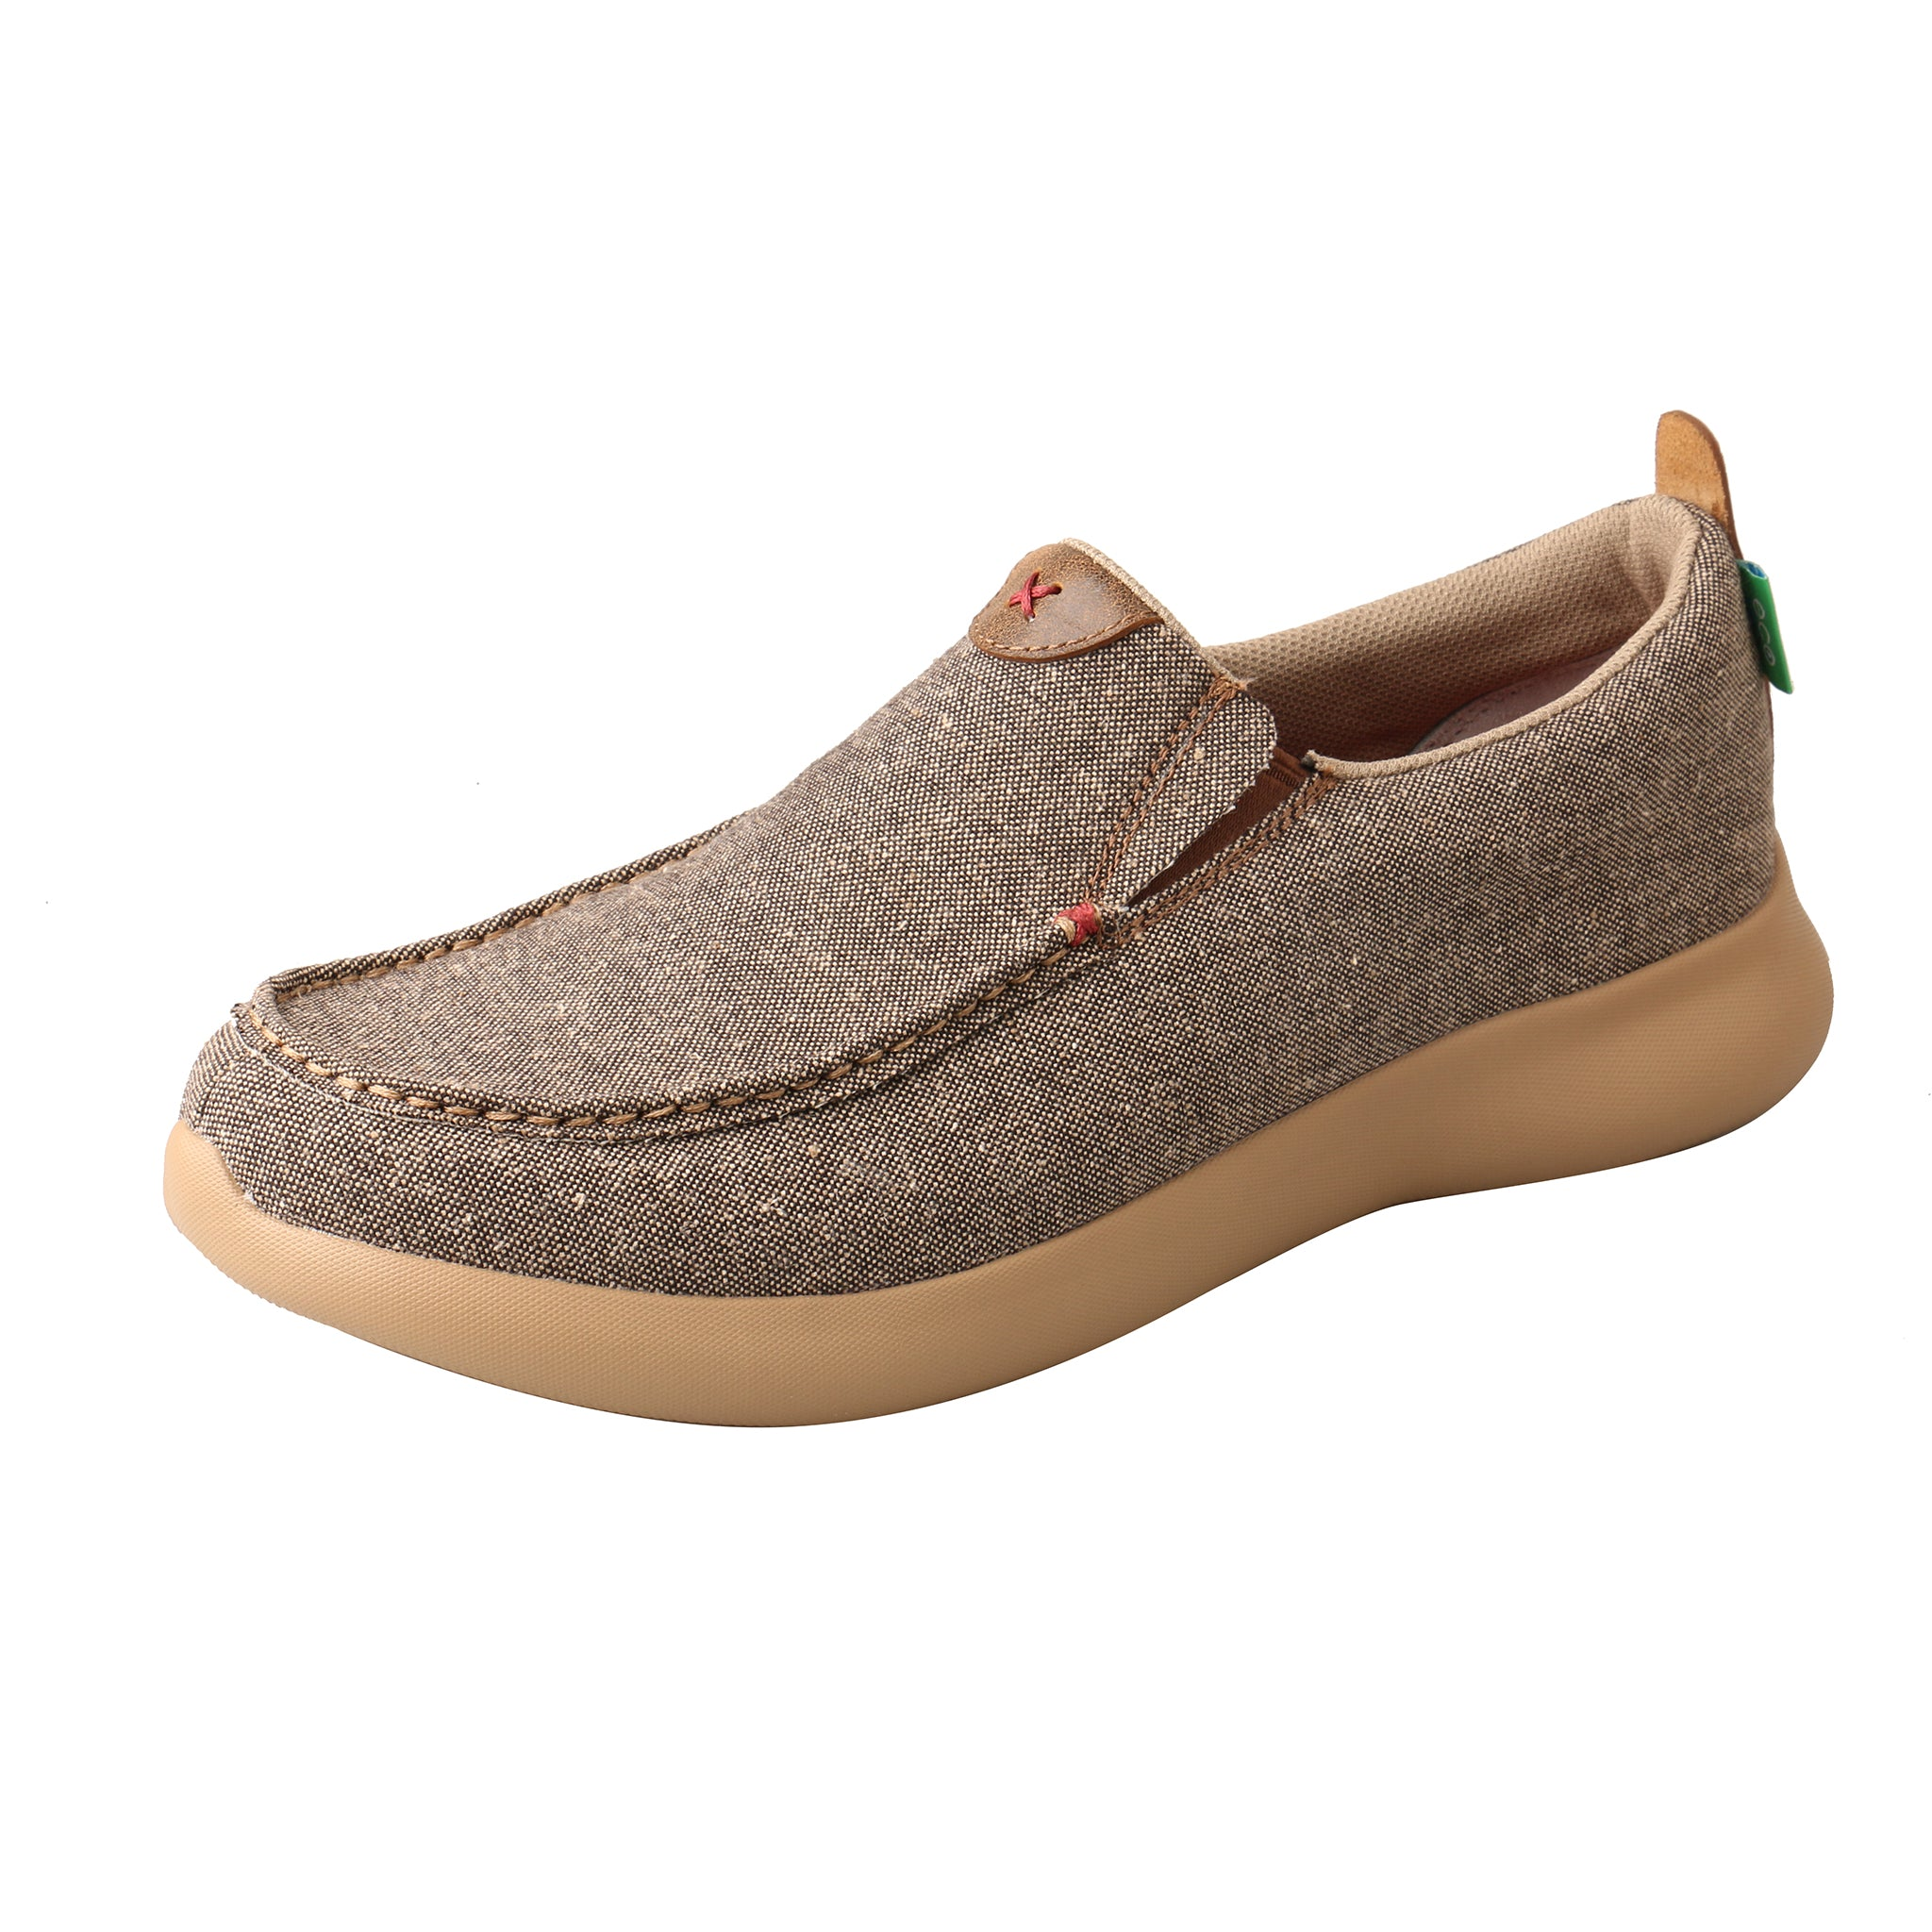 MRV0002 - 'Twisted X' Reva12 Slip-On - Dust